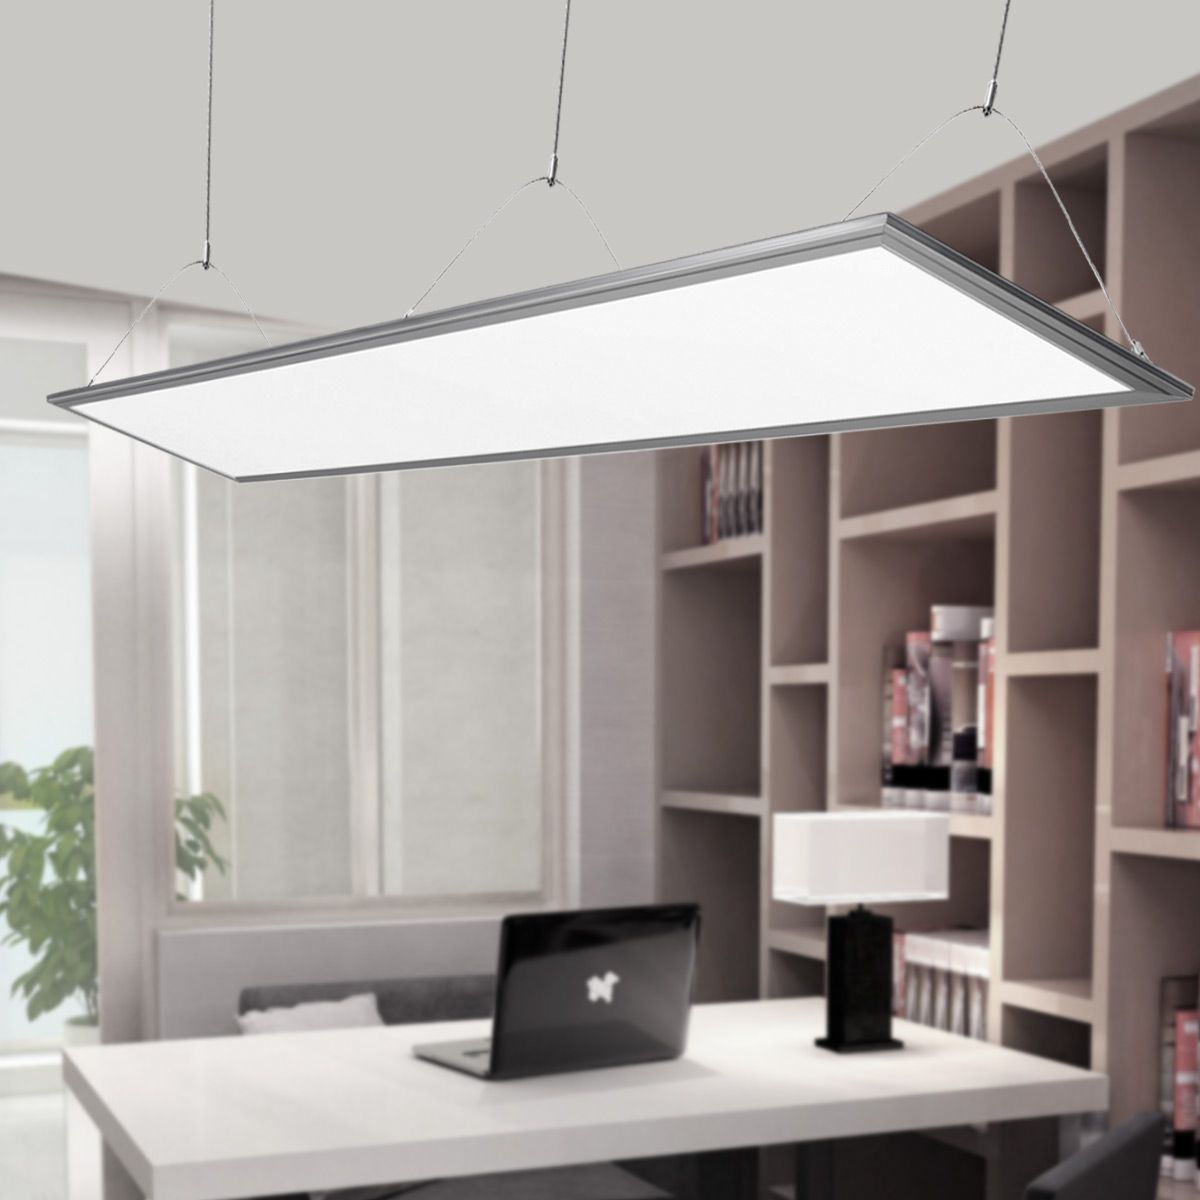 Non Dimmable 1 X4 36w Recessed Troffers And Flat Led Panel Light 3 Years Warranty Le Led Panel Light Led Panel Ceiling Light Design